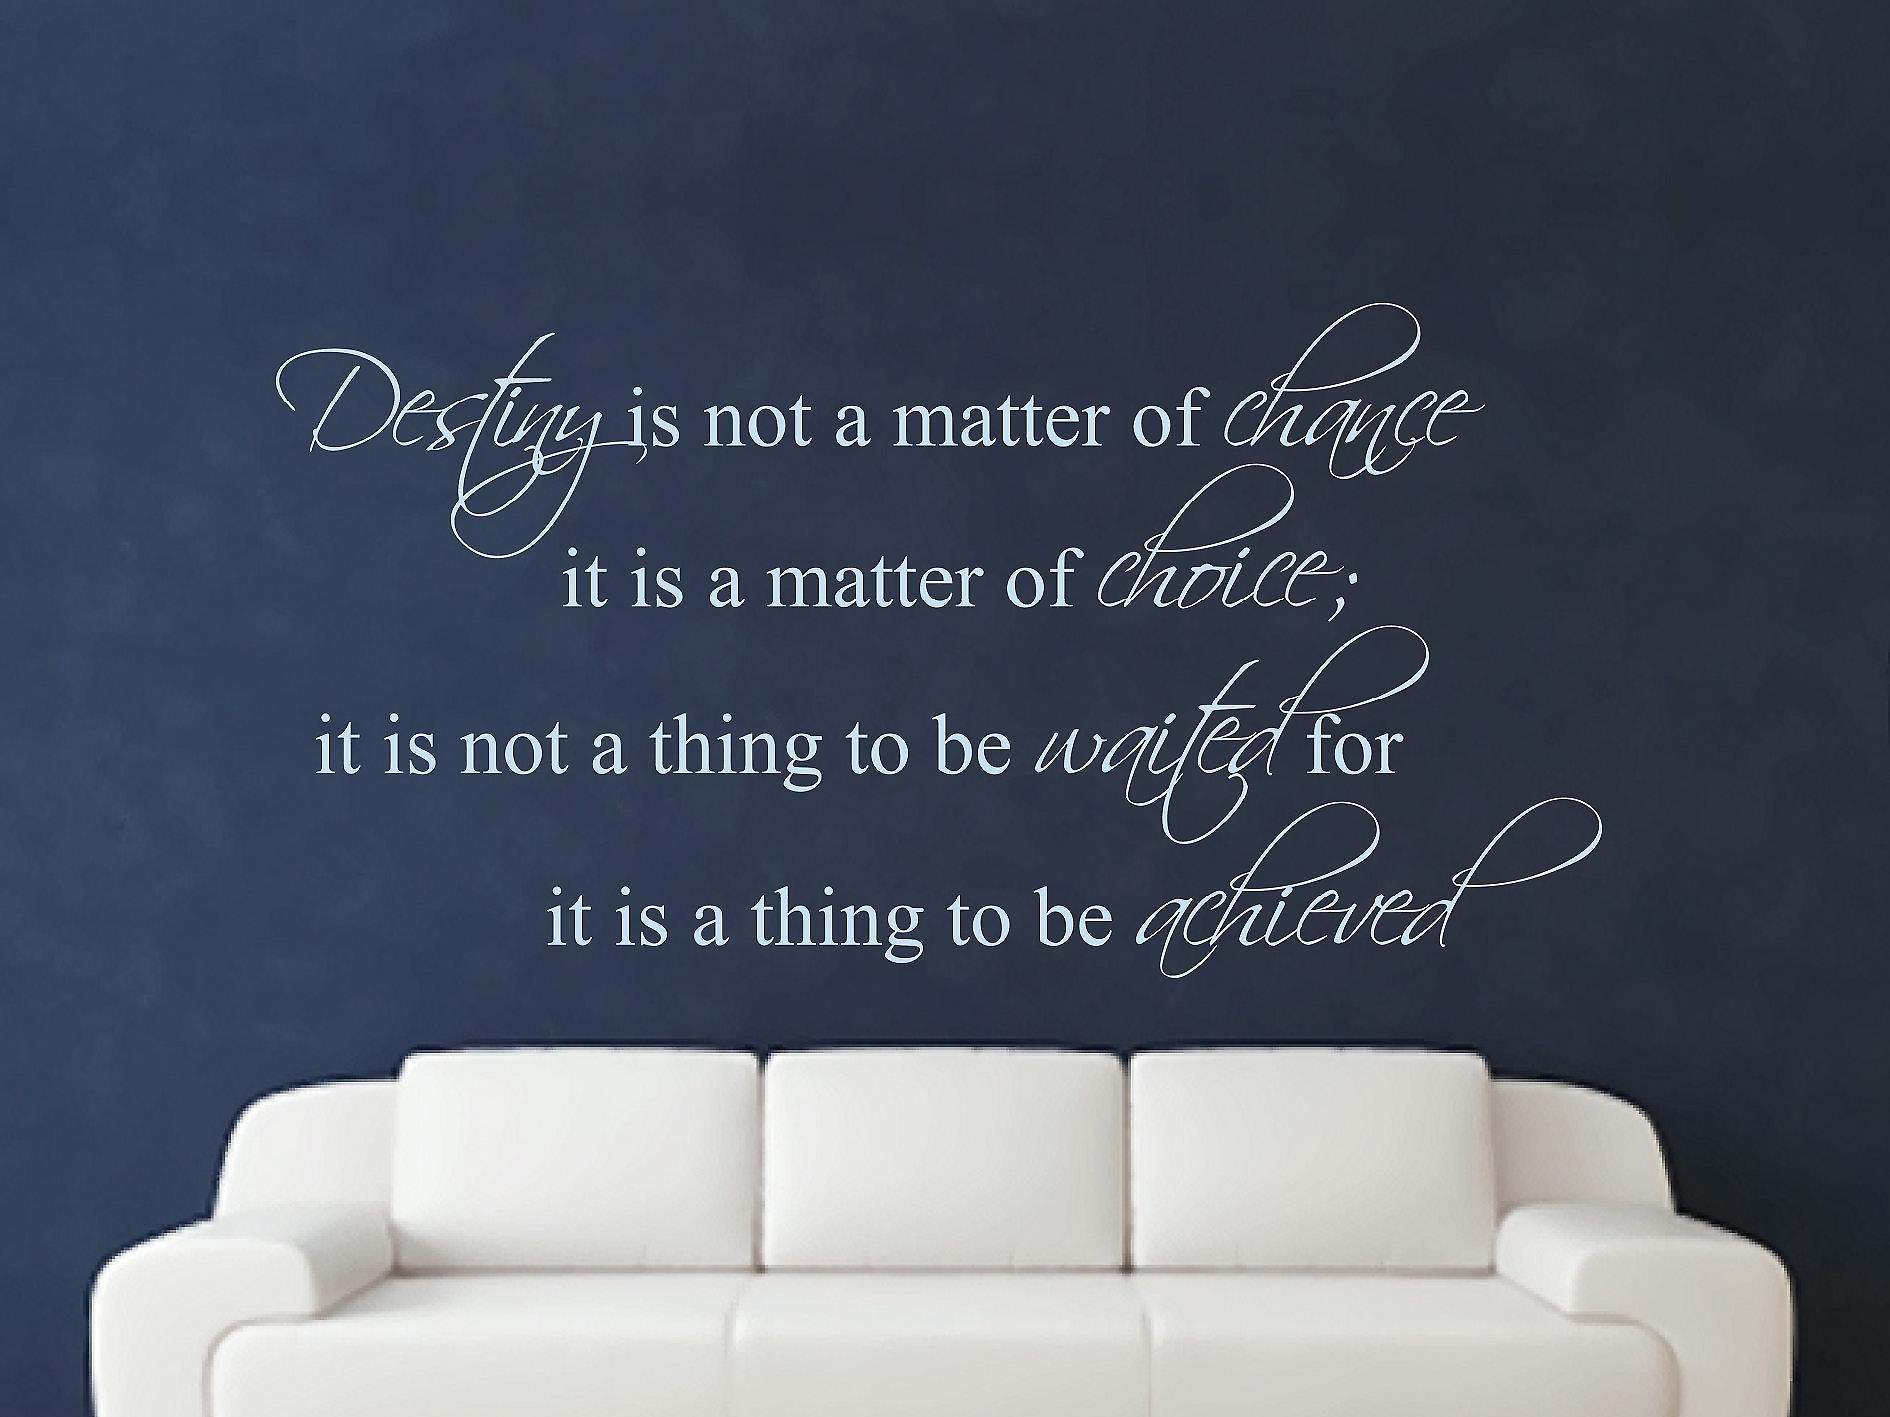 Destiny Is Not A Matter of Chance Wall Art Sticker - Pastel Blue